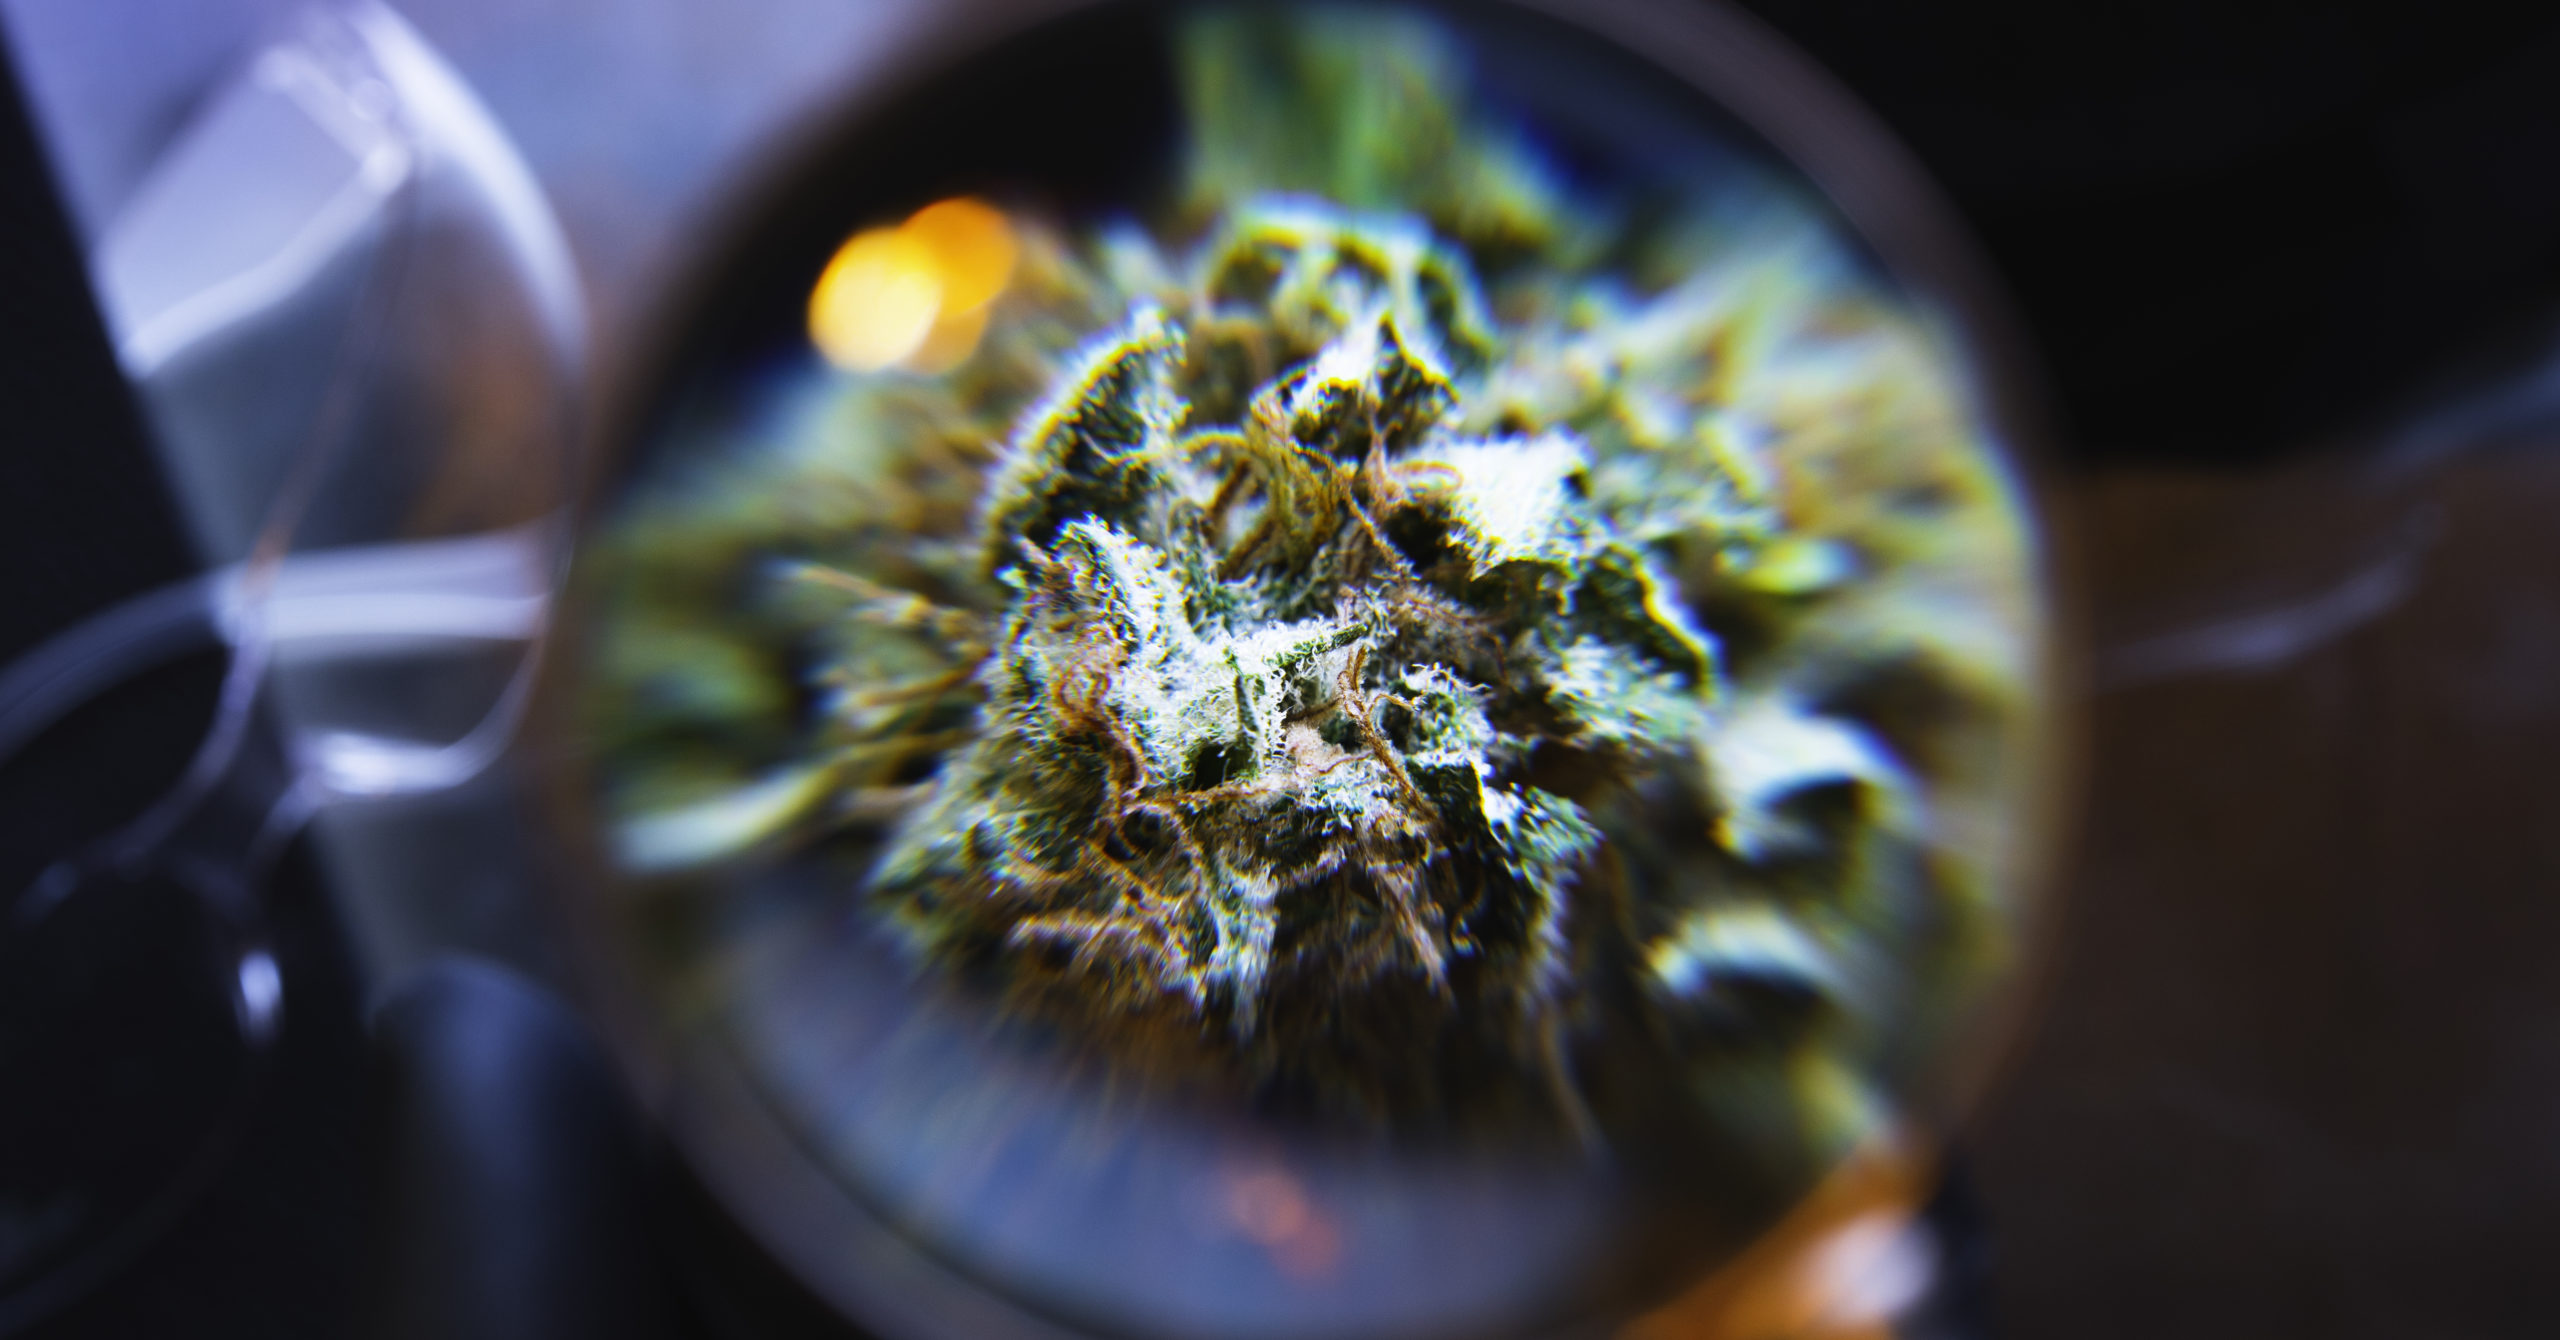 magnifying glass to look at your cannabis hemp flowers trichromes